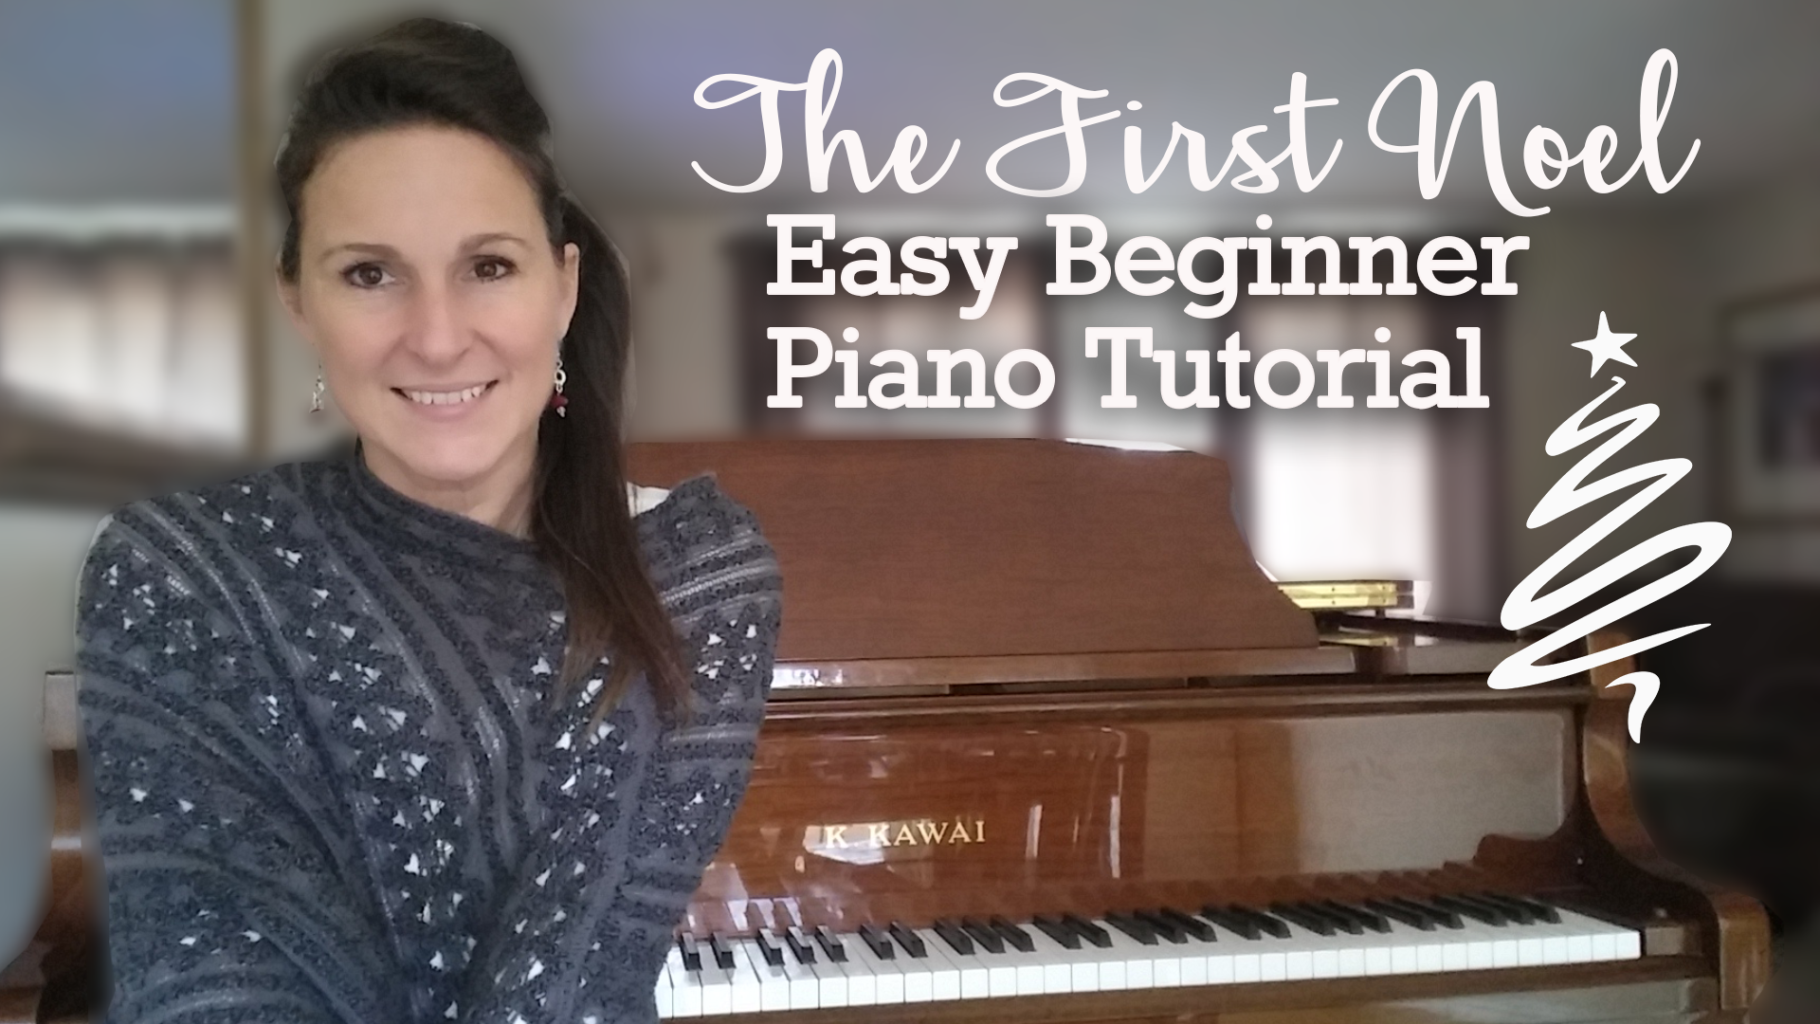 How to Play the First Noel for Easy Beginner Piano